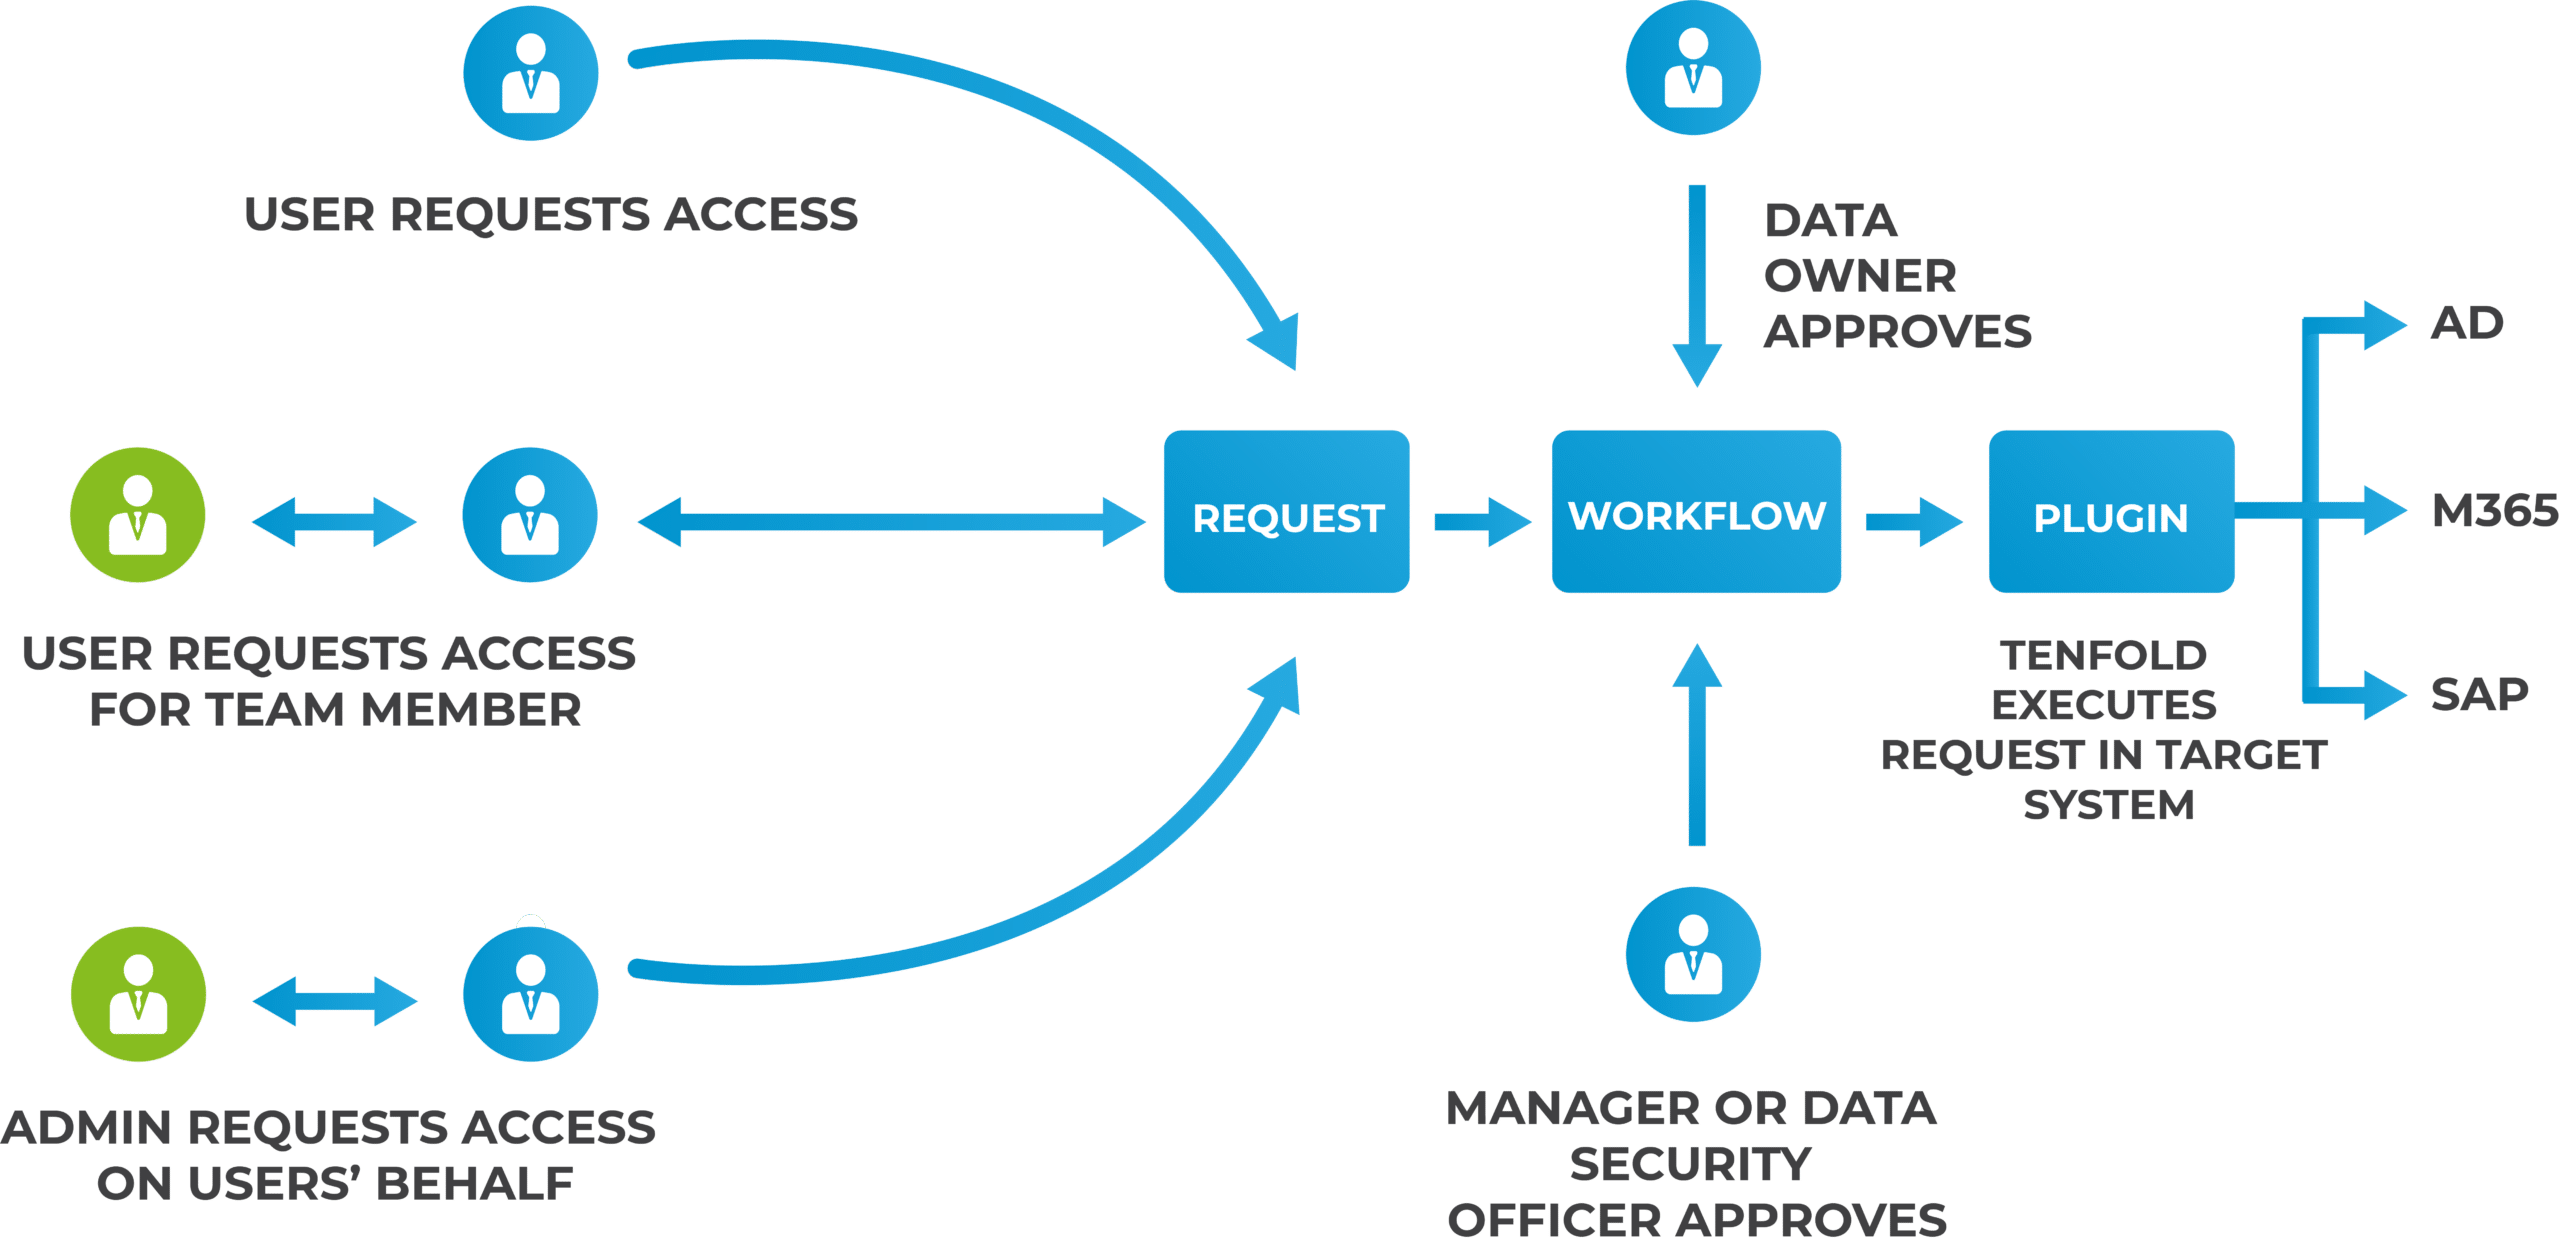 Diagram illustrating approval workflows in the IAM software tenfold.